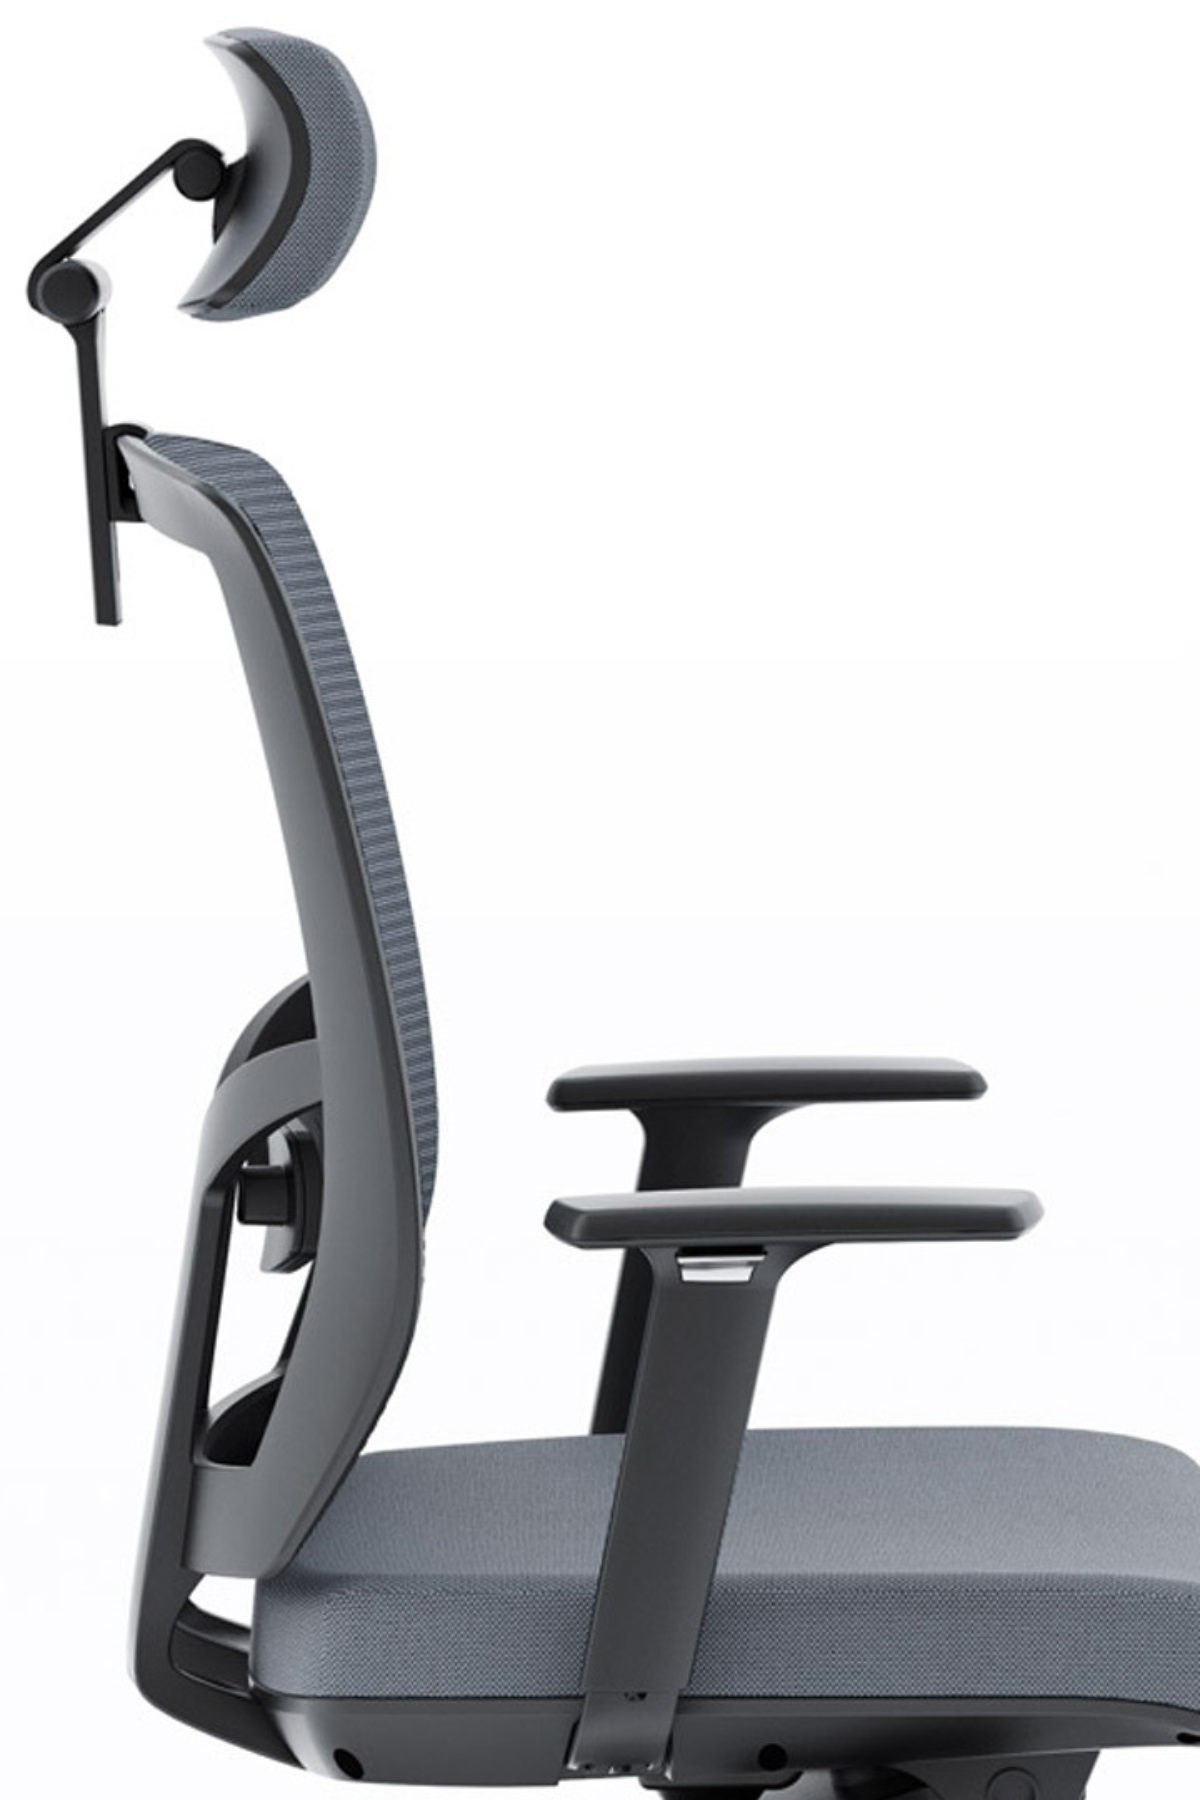 The fully adjustable Task Chair by BDI featuring multiple settings